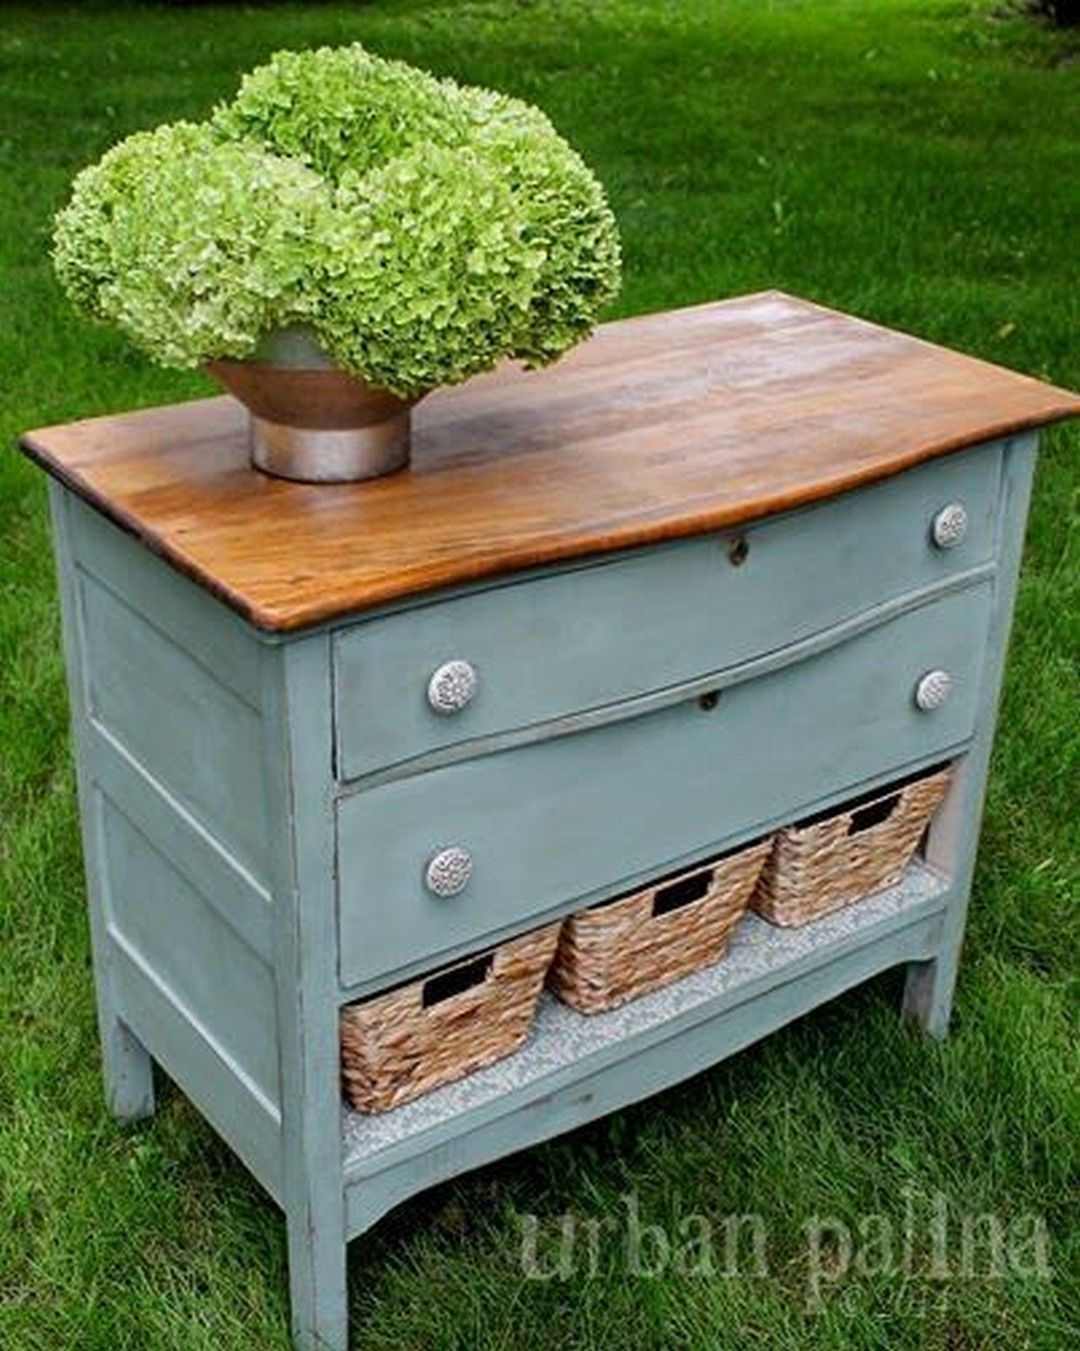 Great Inexpensive Way To Create An Old Pie Safe Look Using Current Day Unused Dresser